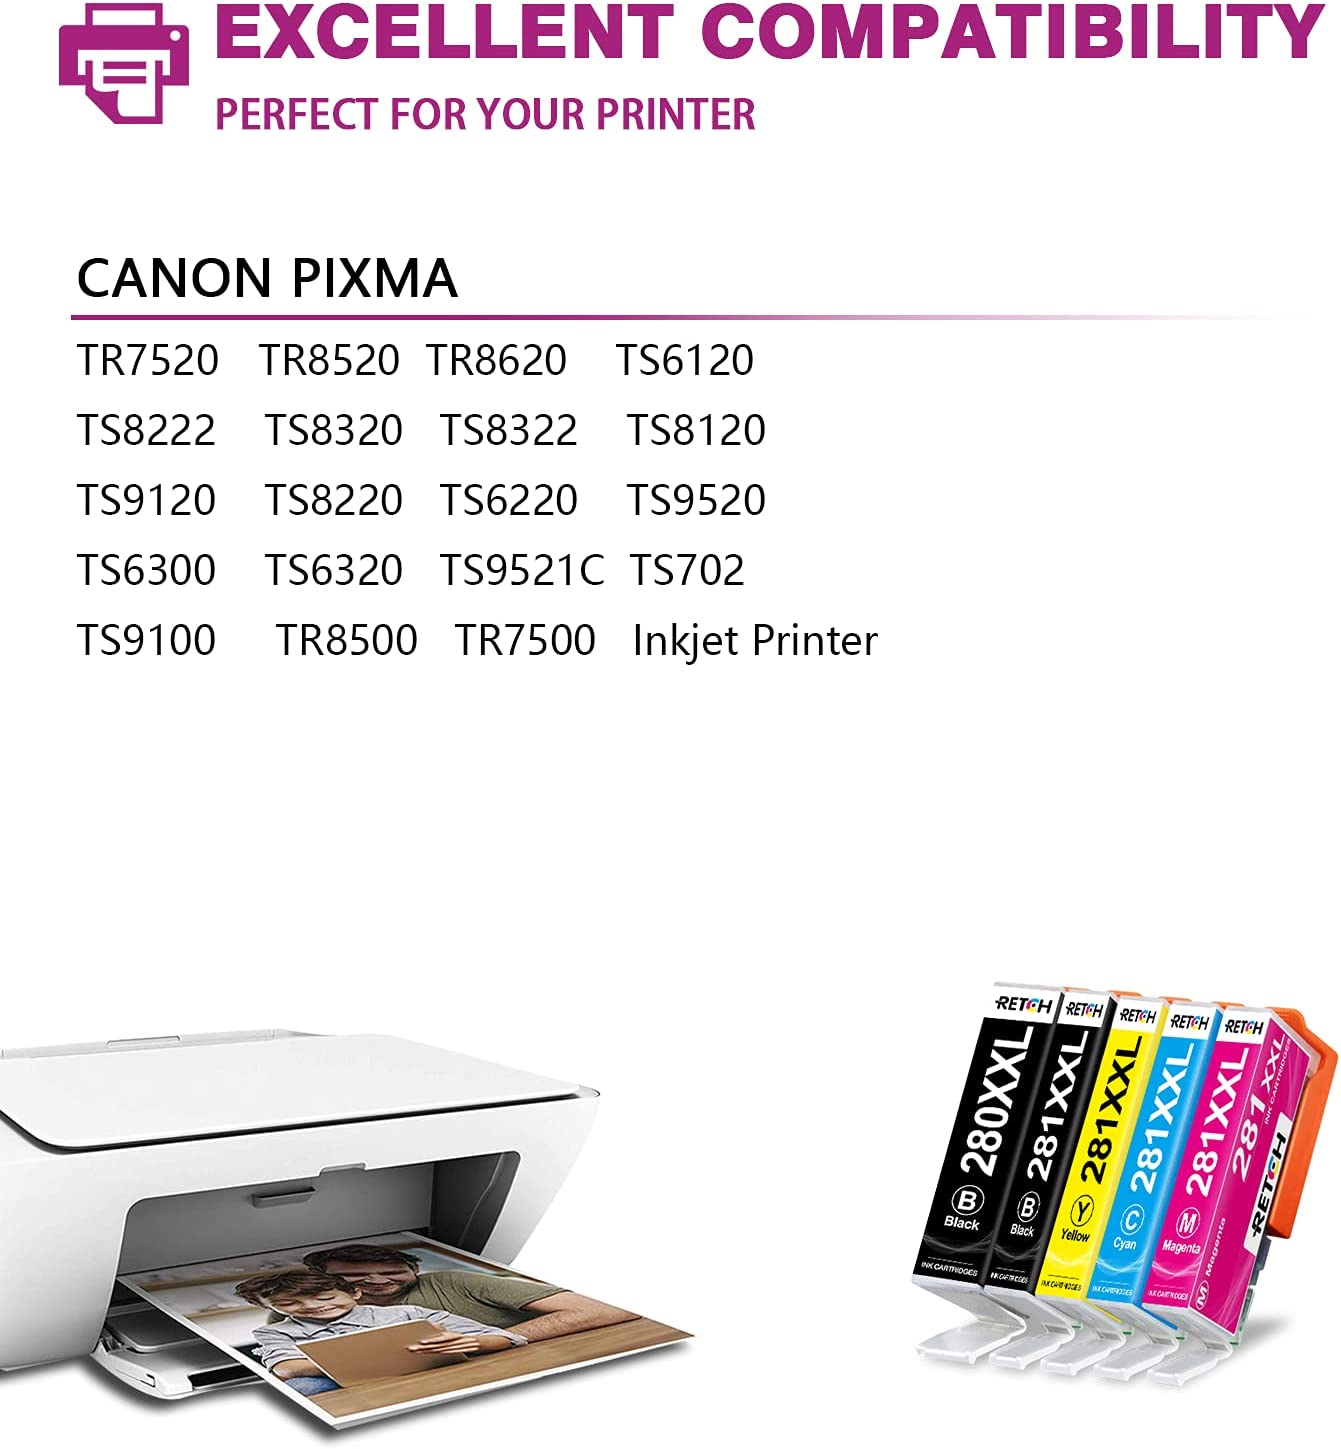 RETCH Compatible Inkjet Printer Ink Cartridges Tray Replacement for Canon 280 and 281 PGI-280XXL CLI-281XXL for PIXMA TR8520 TS8220 TR7520 TS9120 TS6120 TS6220 TS8120 TS9520 TS8320 Priter (10)